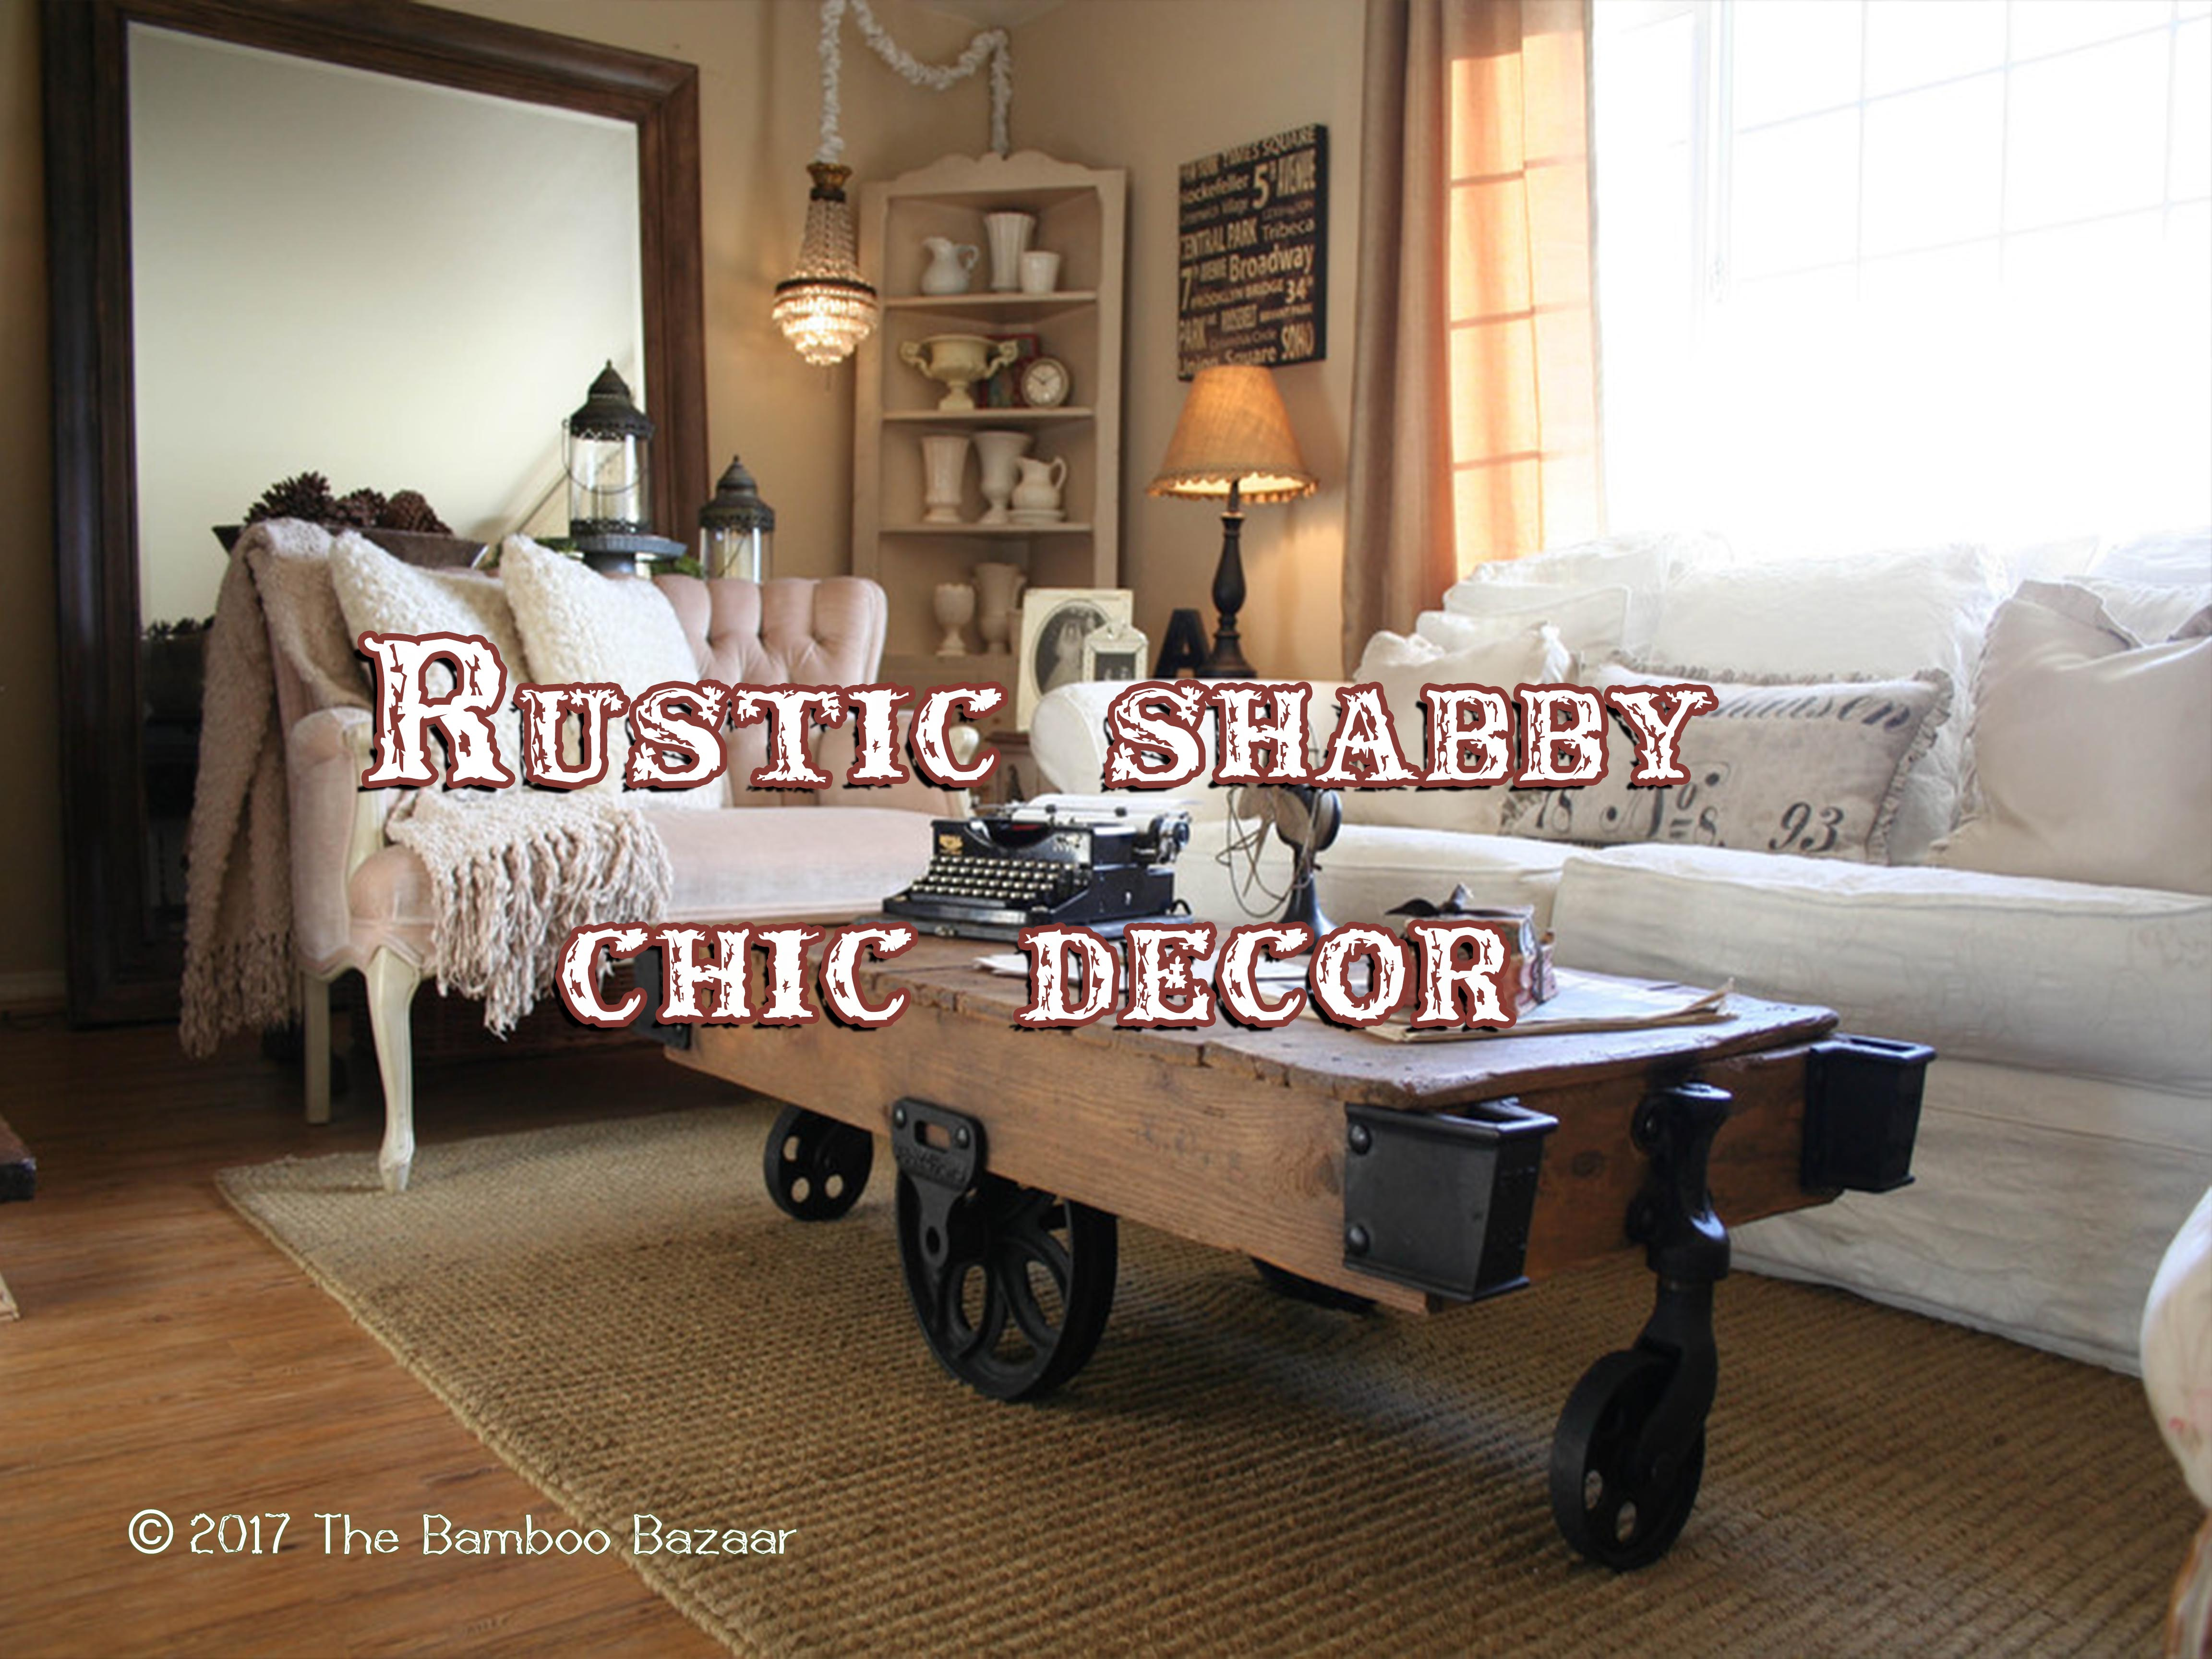 Rustic Shabby Chic Dcor Perfect Marriage of Two Interior